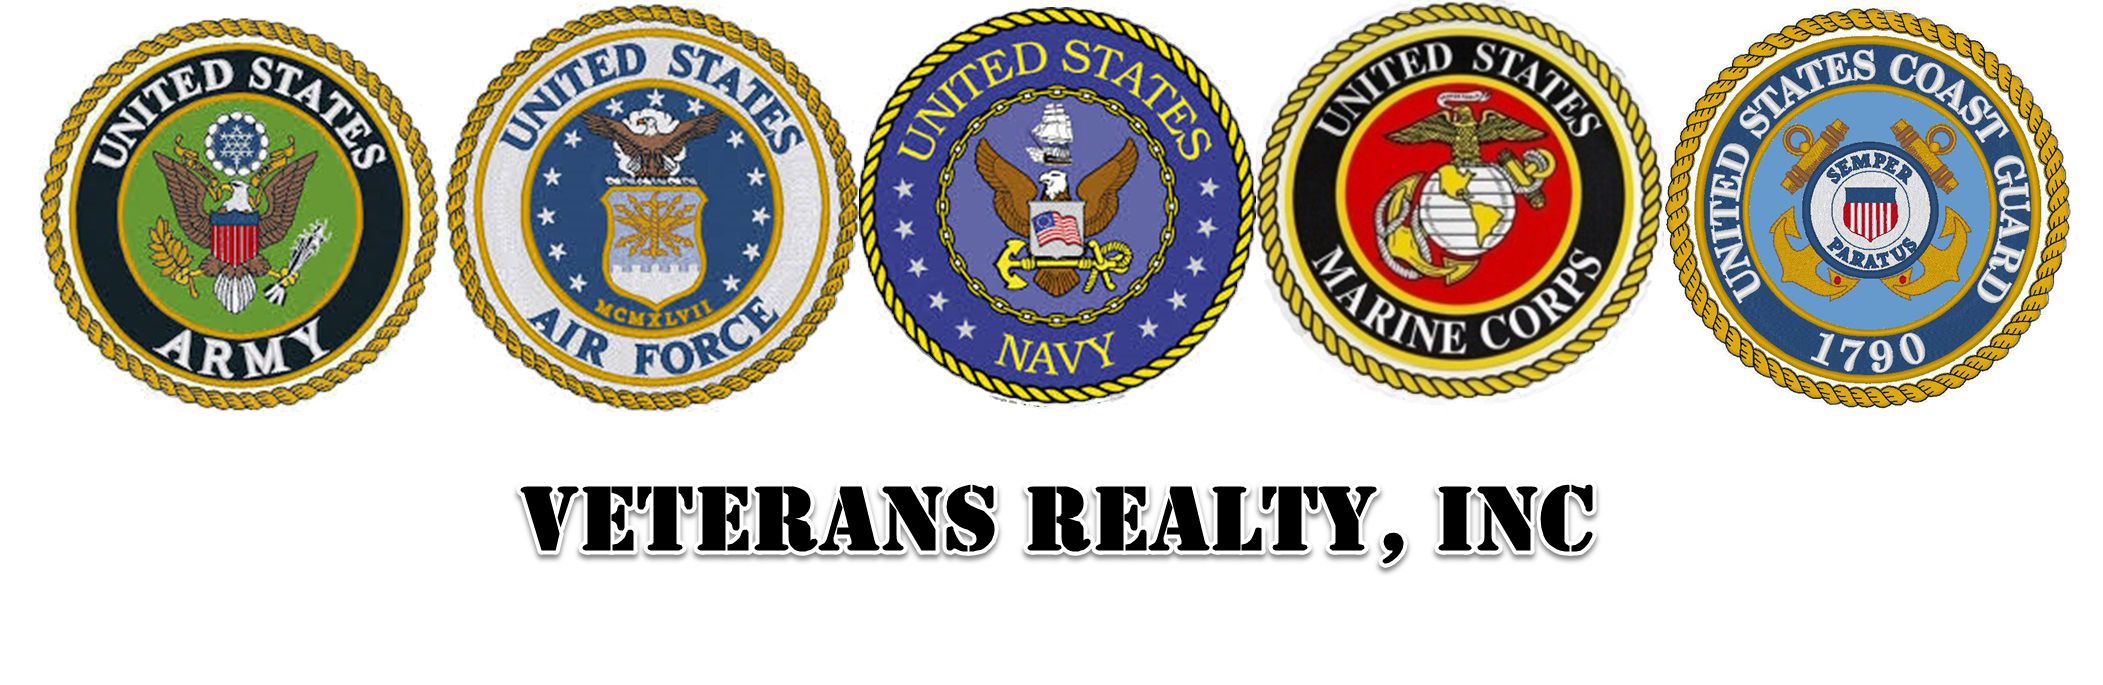 Veterans Realty Inc.